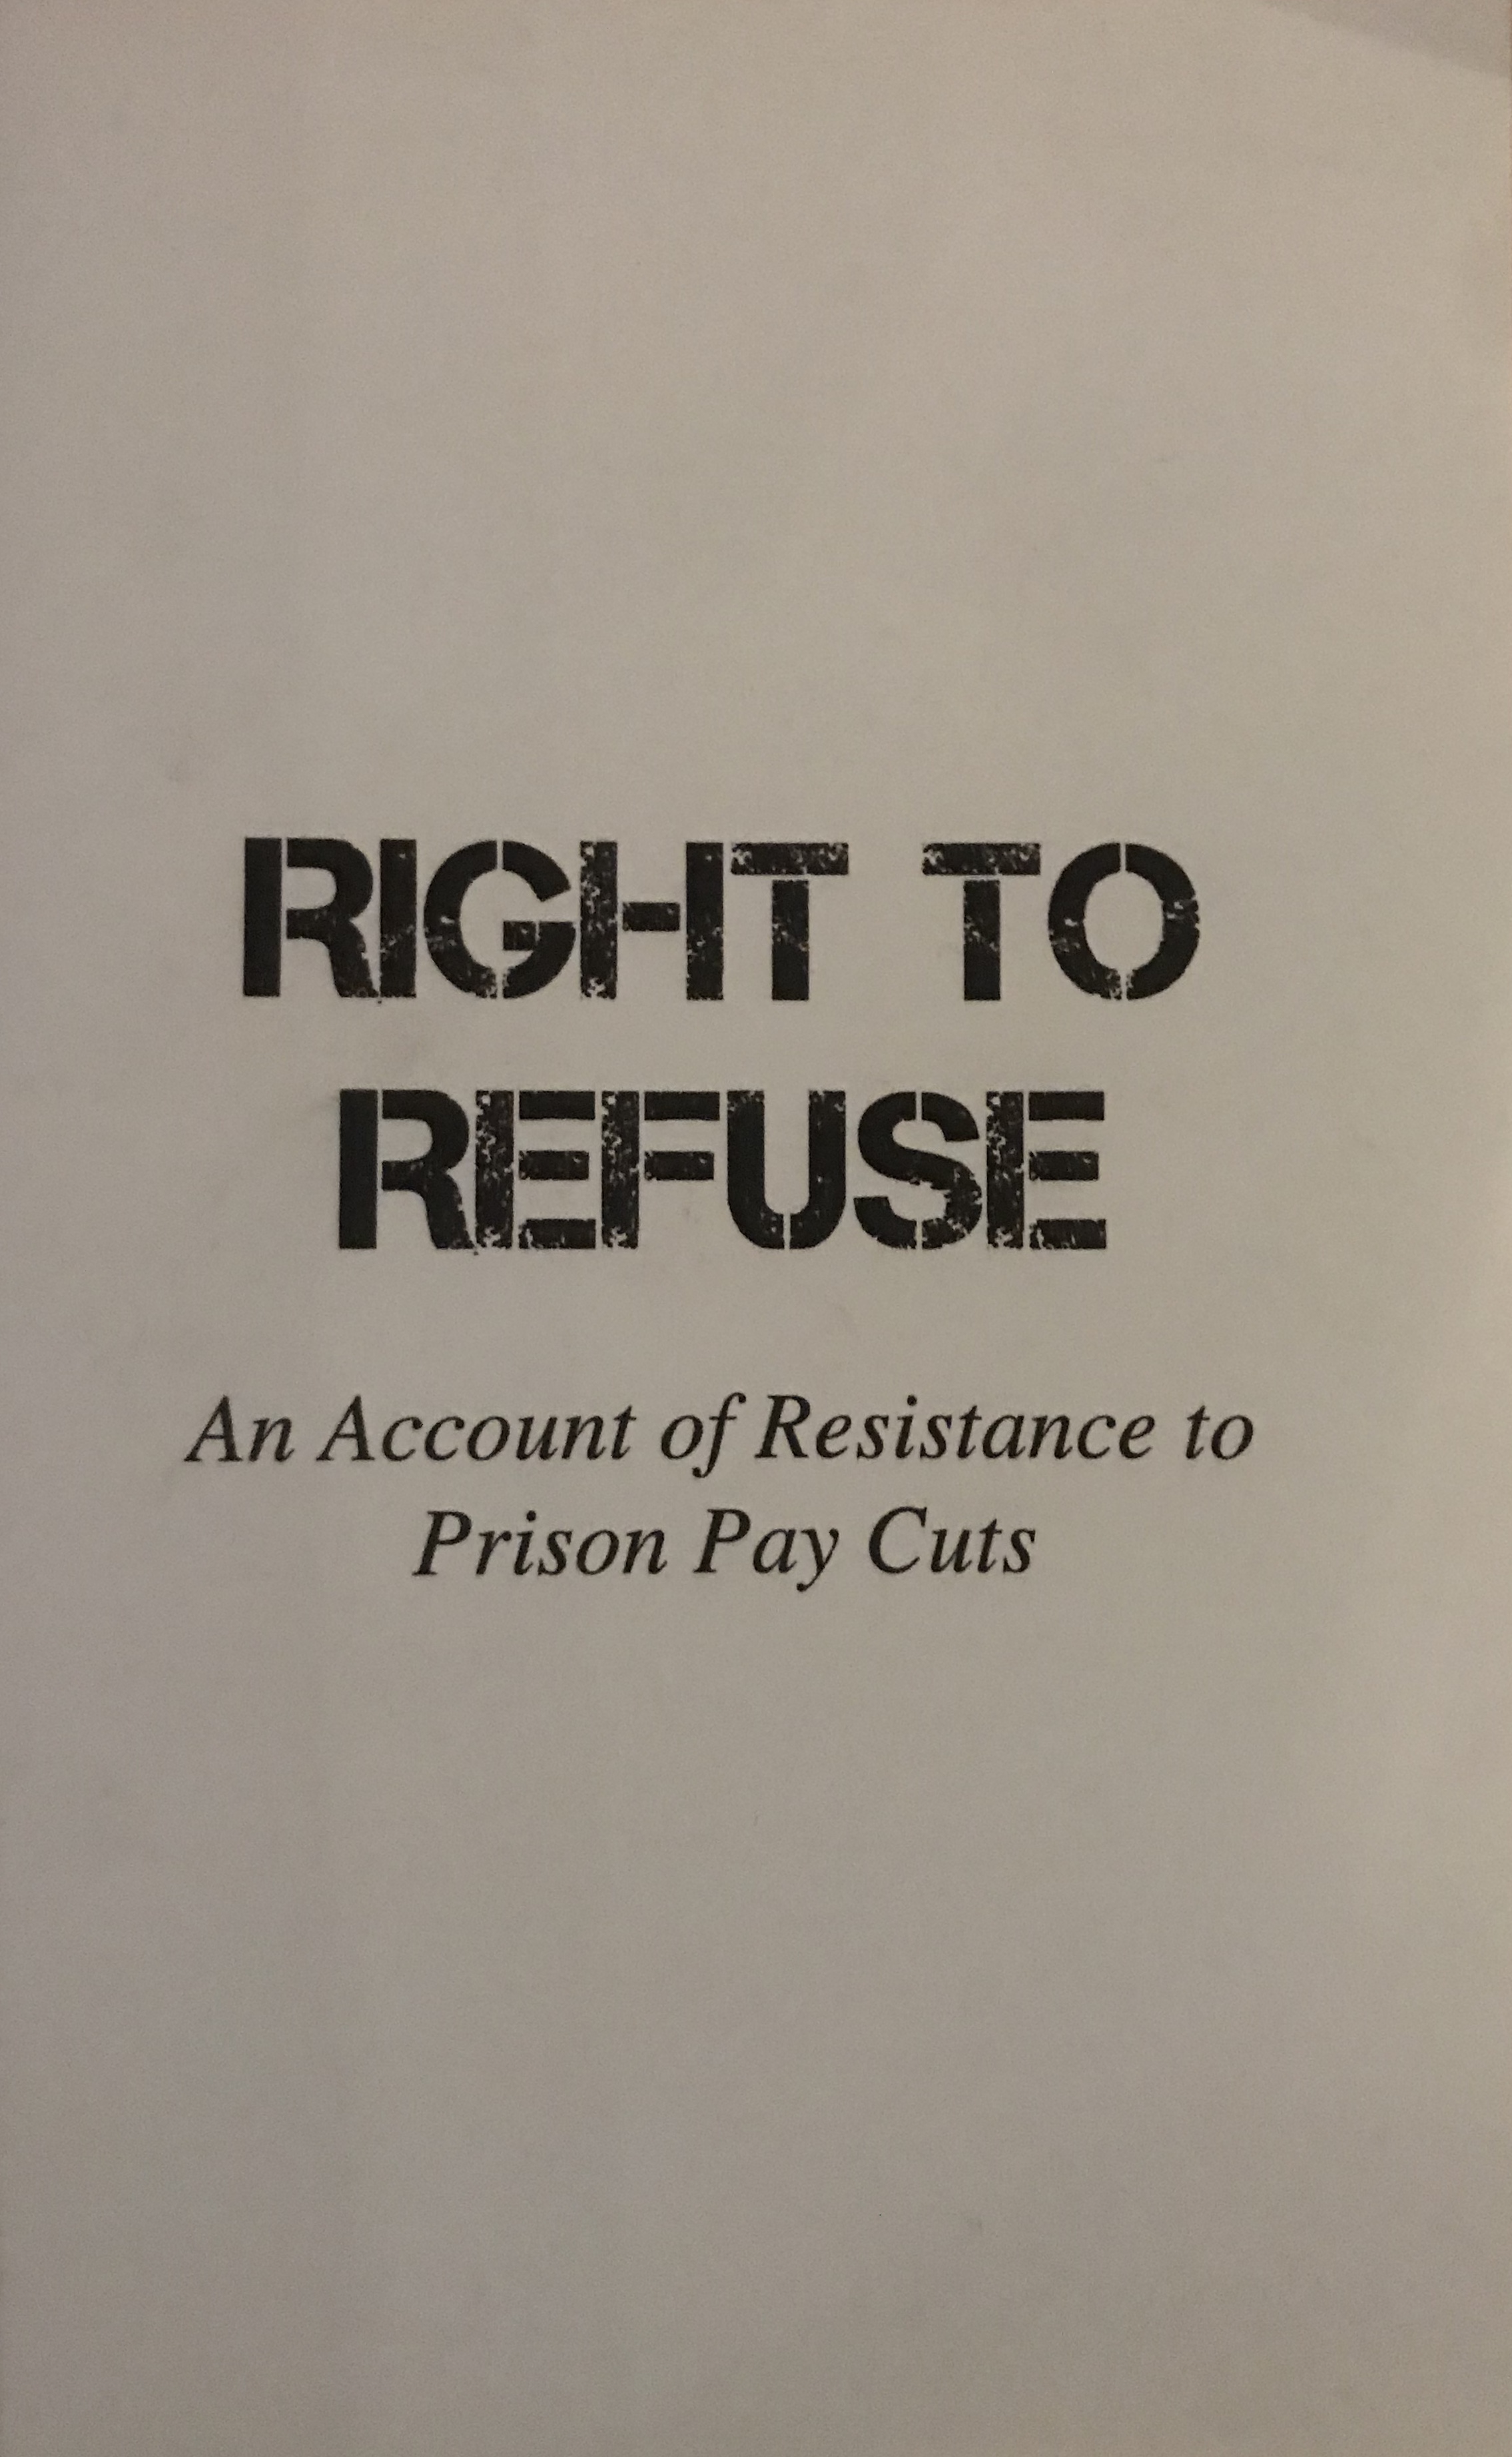 Zine cover for Right to Refuse; black text on white background